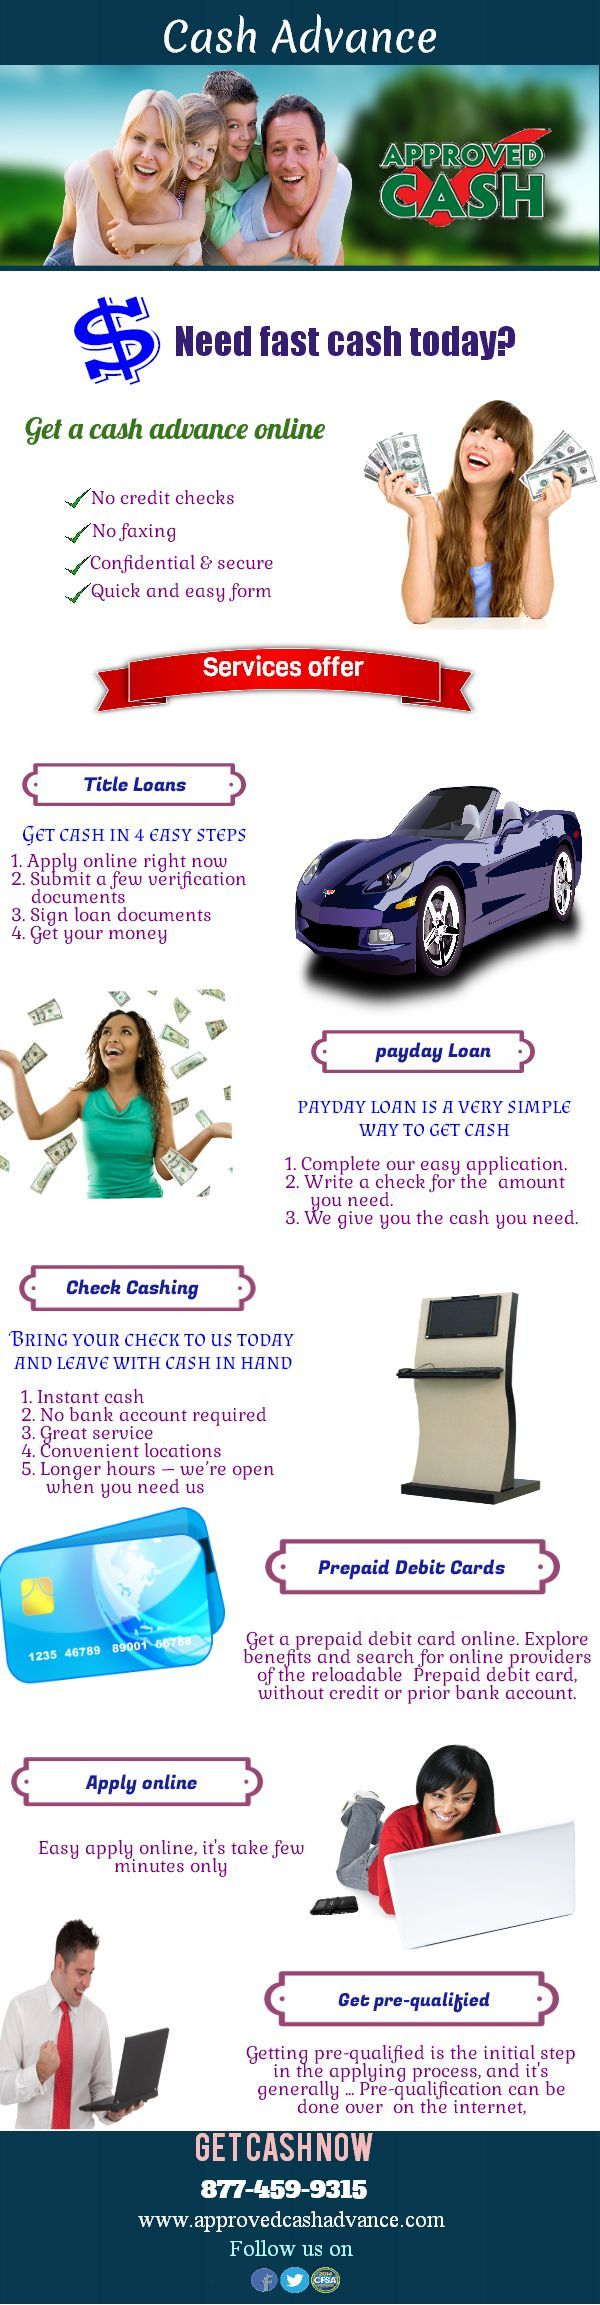 Cash loan in batangas city picture 10